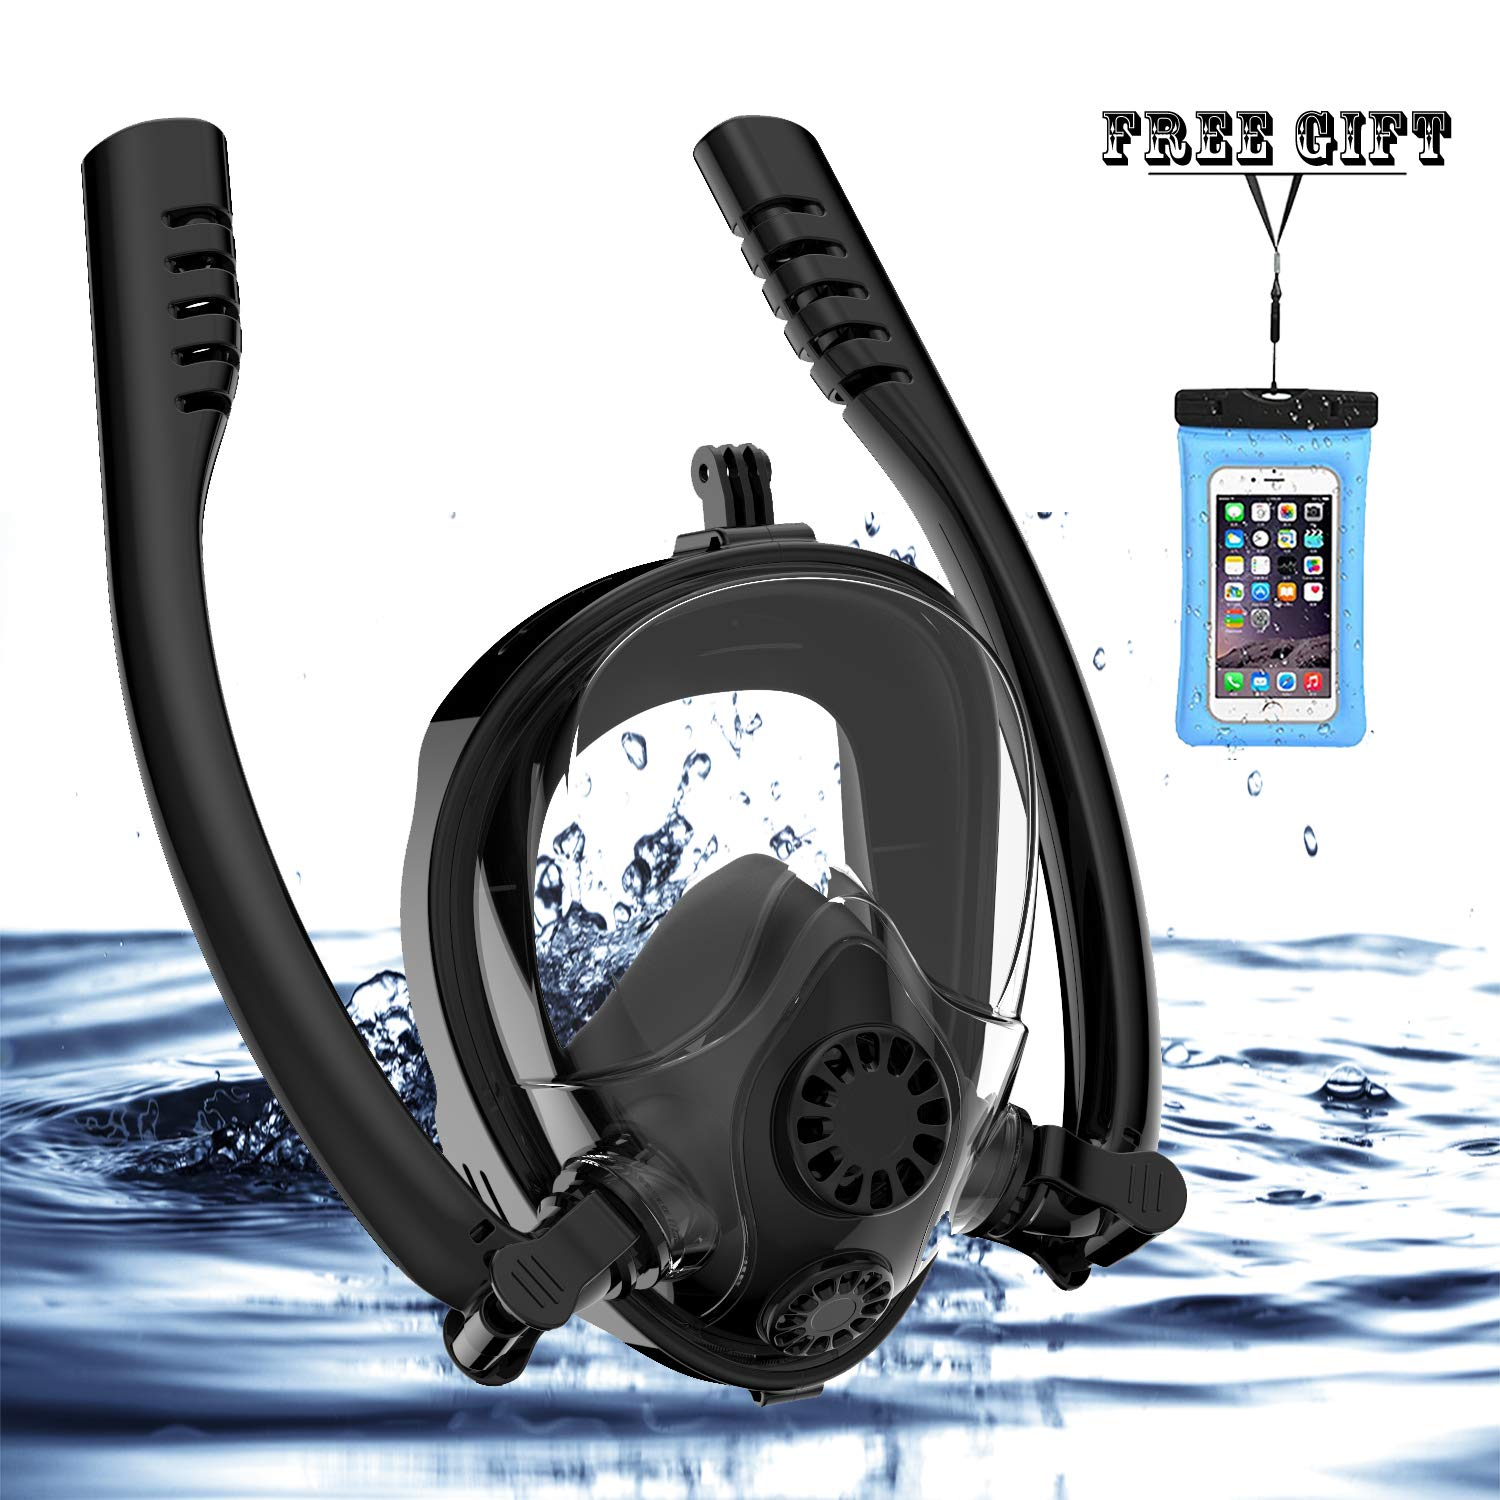 Zero Fog and Anti Leak Guarantee with Camera Mount for Adult HJKB K2 Backstroke Swimming Breathing Snorkeling Mask with Double Tubes and 180/° Panoramic Viewing Full Face Snorkel Mask